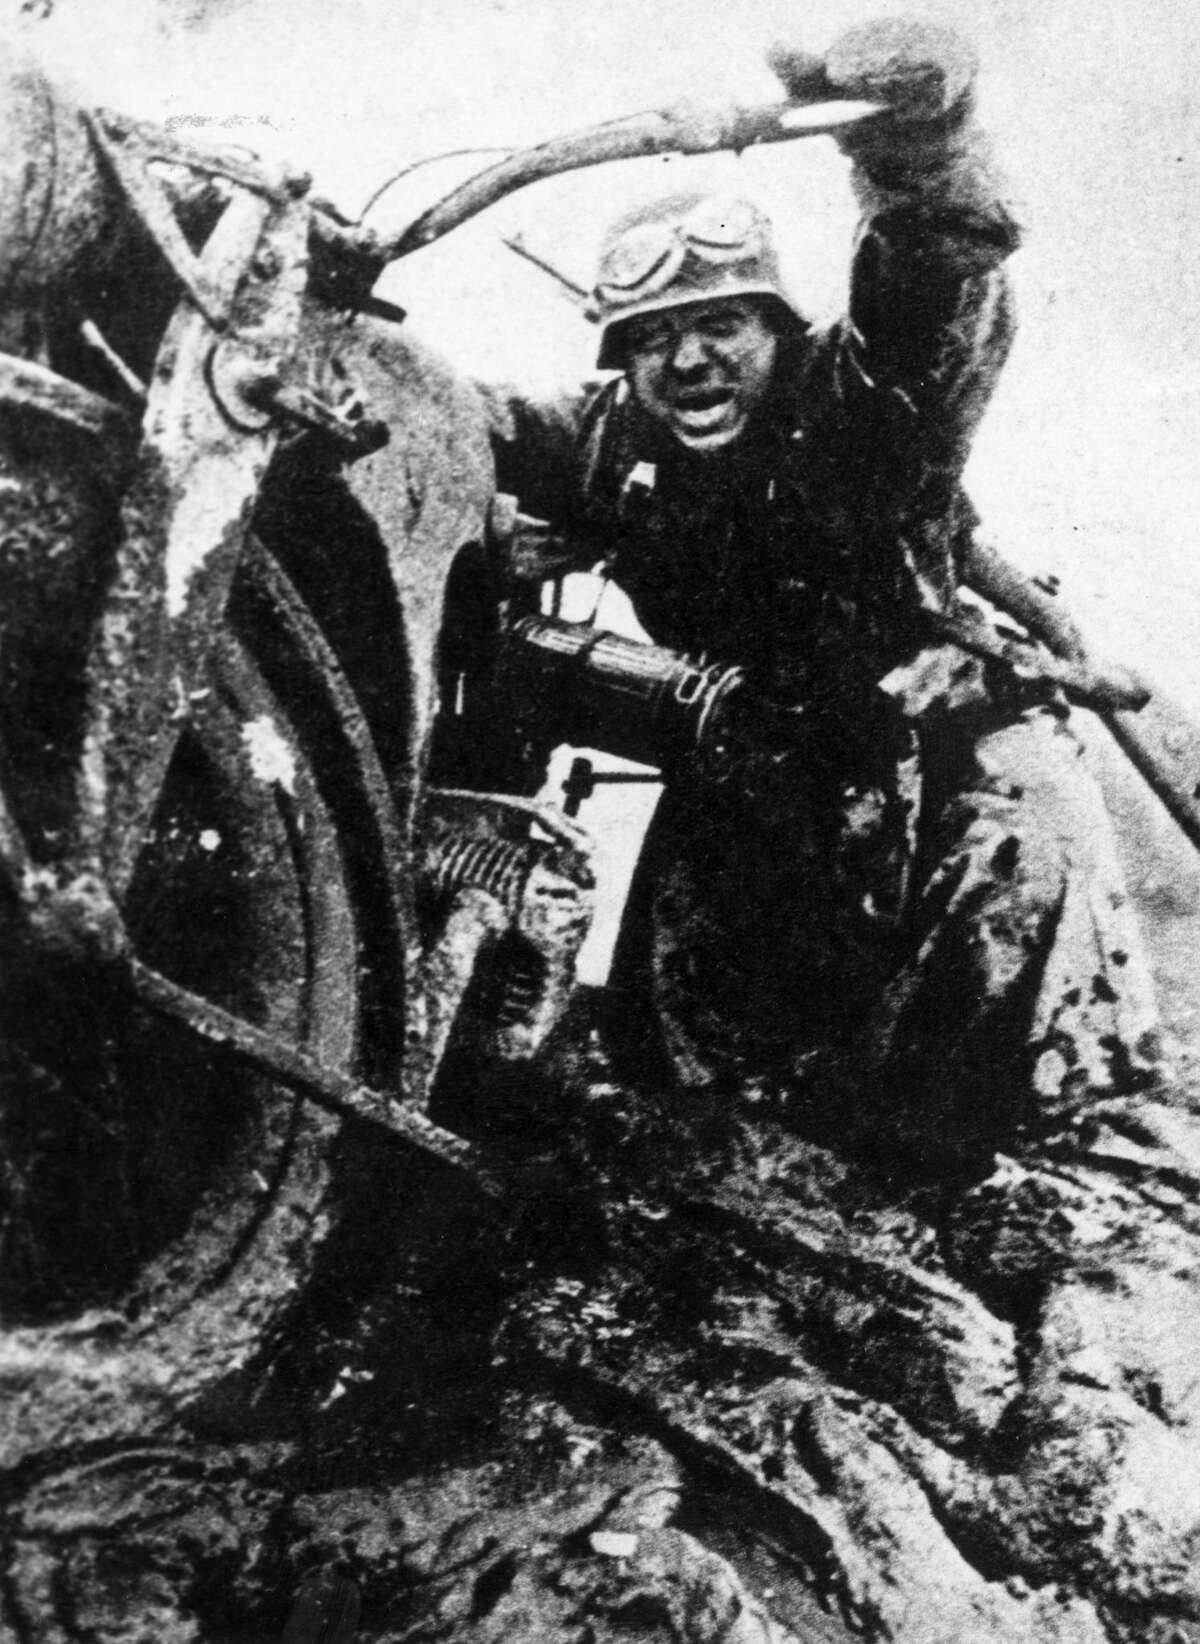 November 1941: A German despatch rider is bogged down in the mud on a Russian battlefield after continuous rainfall. (Photo by Keystone/Getty Images)